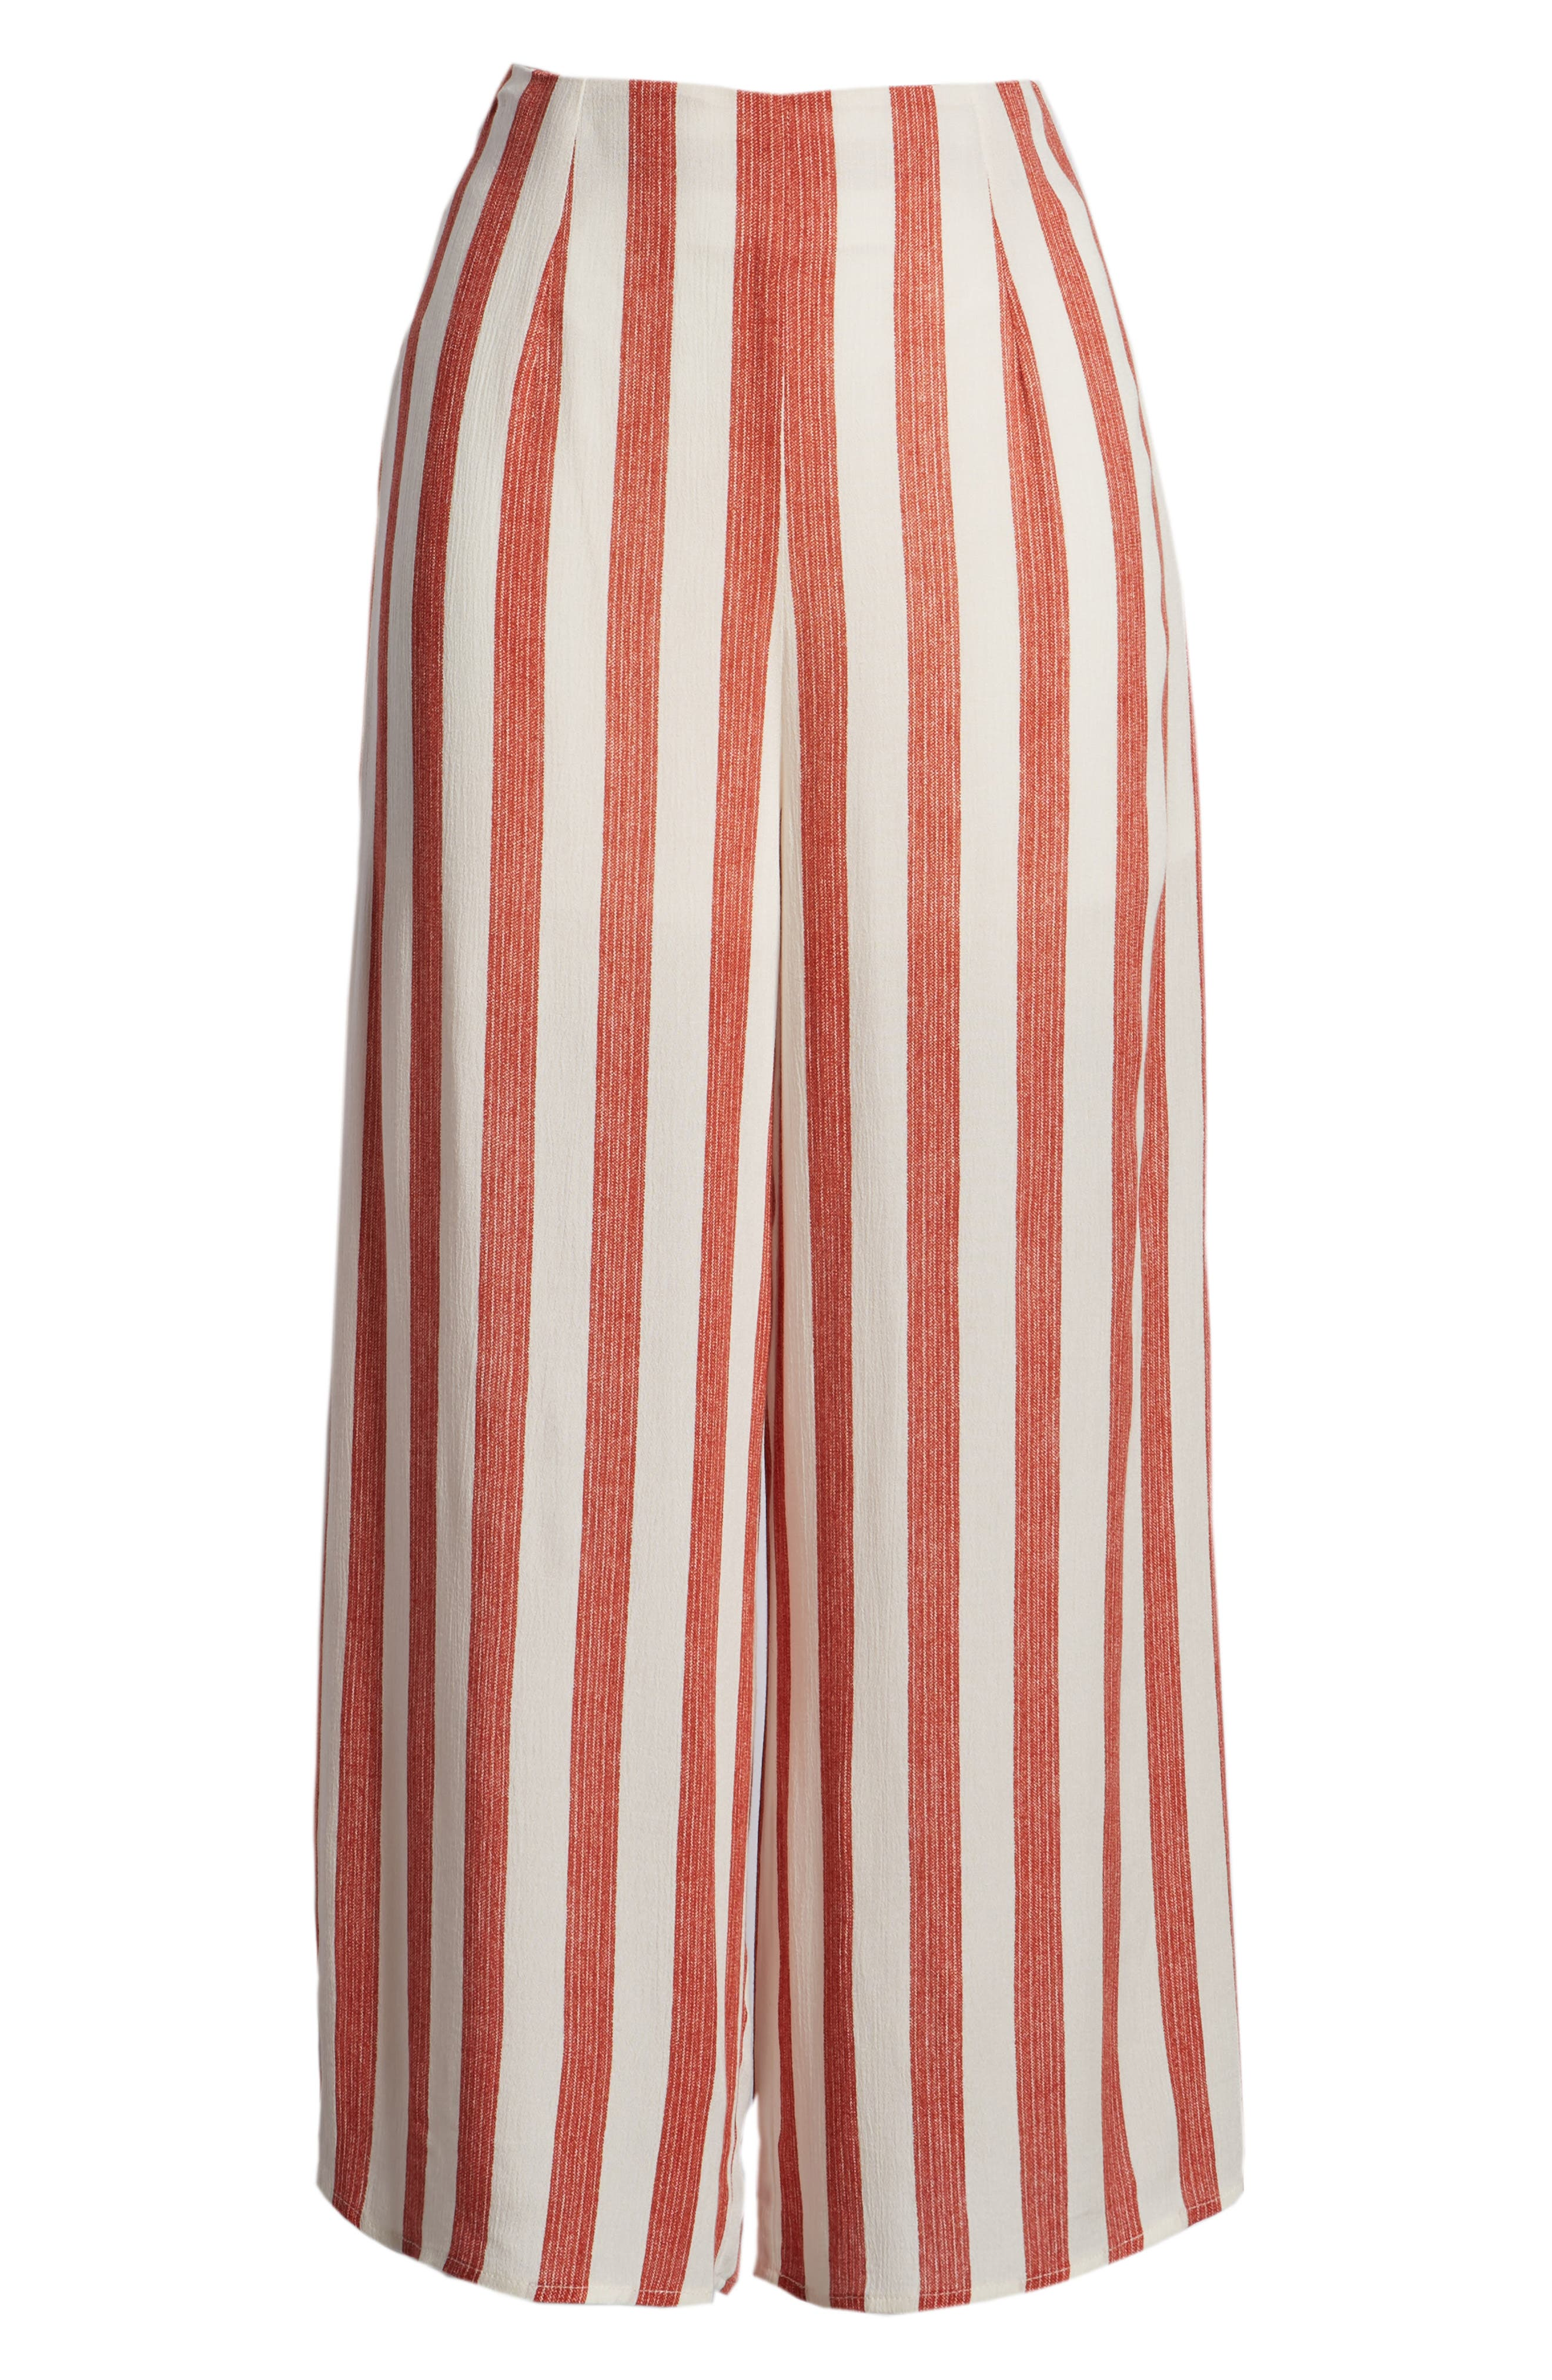 Stripe Culottes,                             Alternate thumbnail 8, color,                             Red/ Ivory